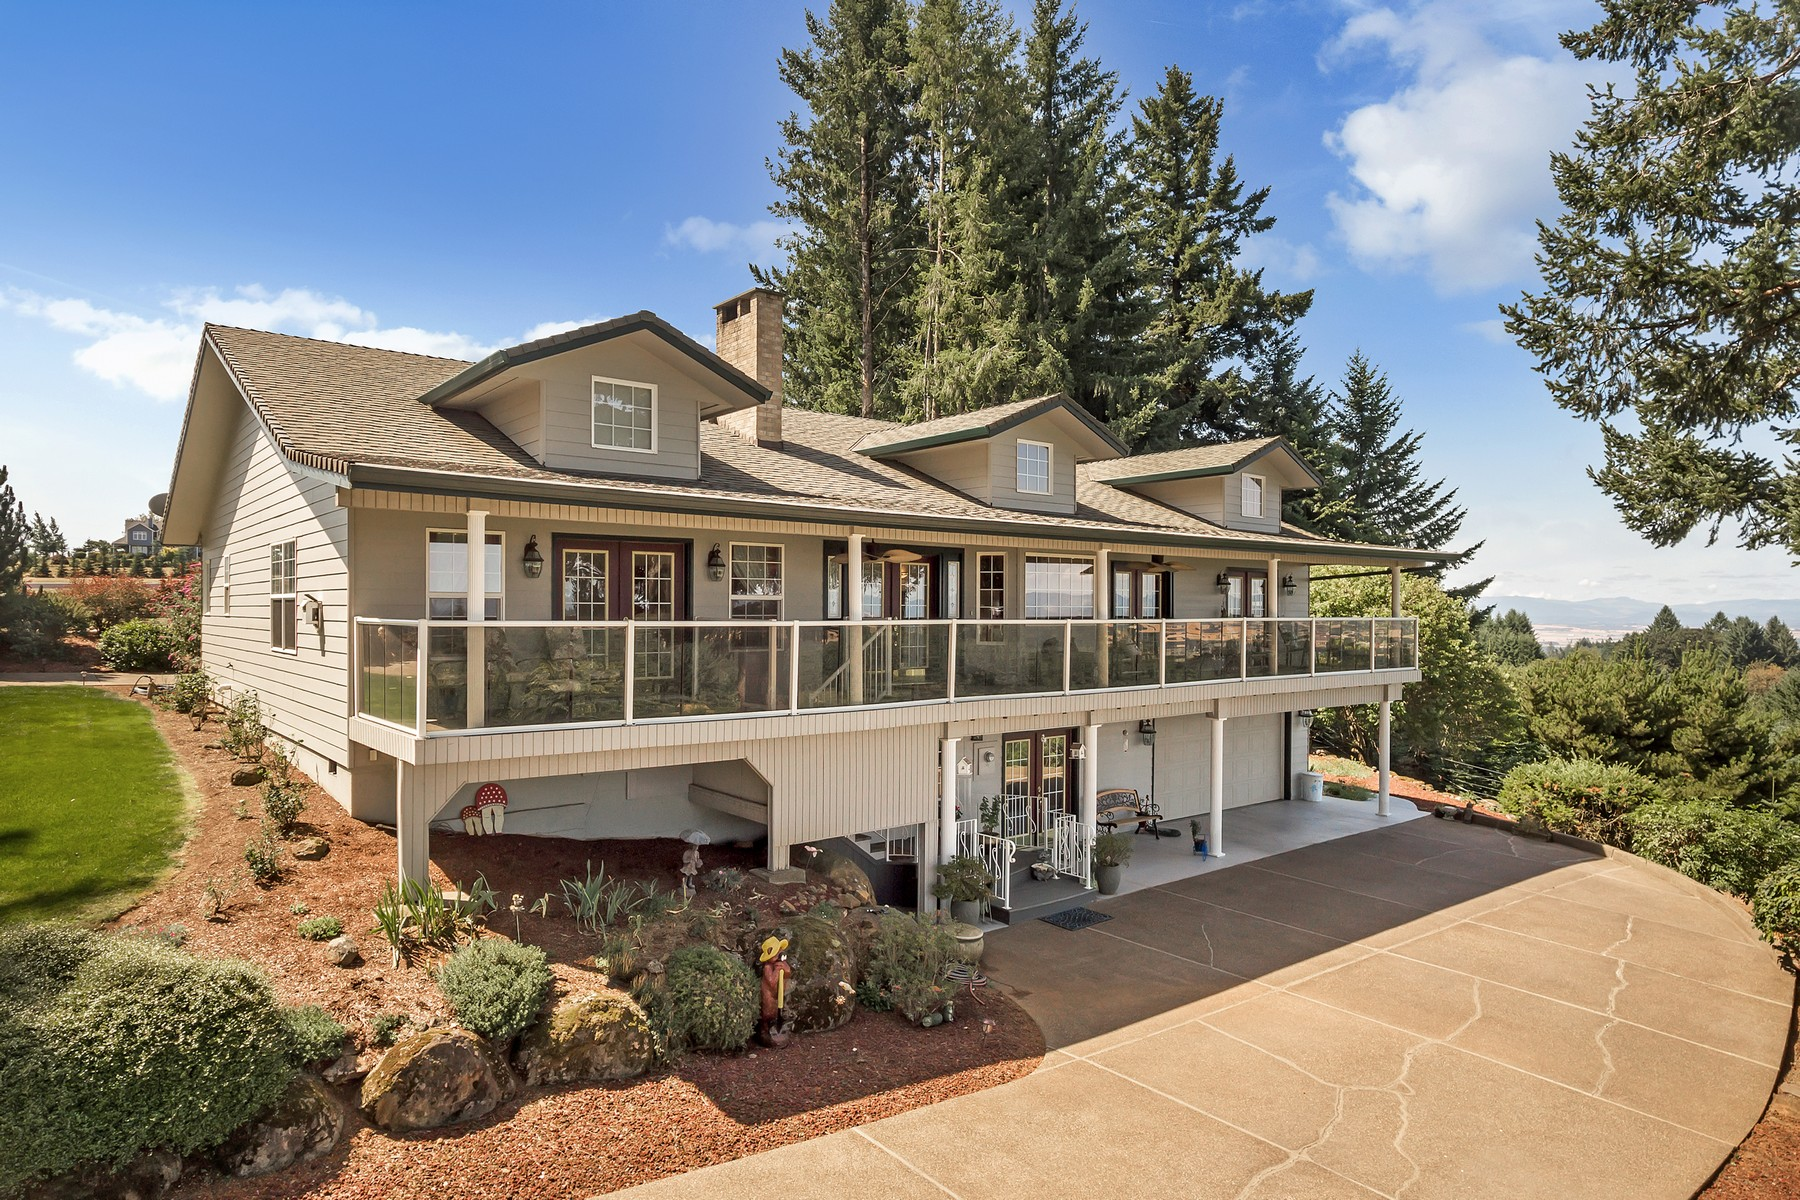 Single Family Homes for Active at Wine Country Valley Views 23230 SE Franquette Dr Amity, Oregon 97101 United States